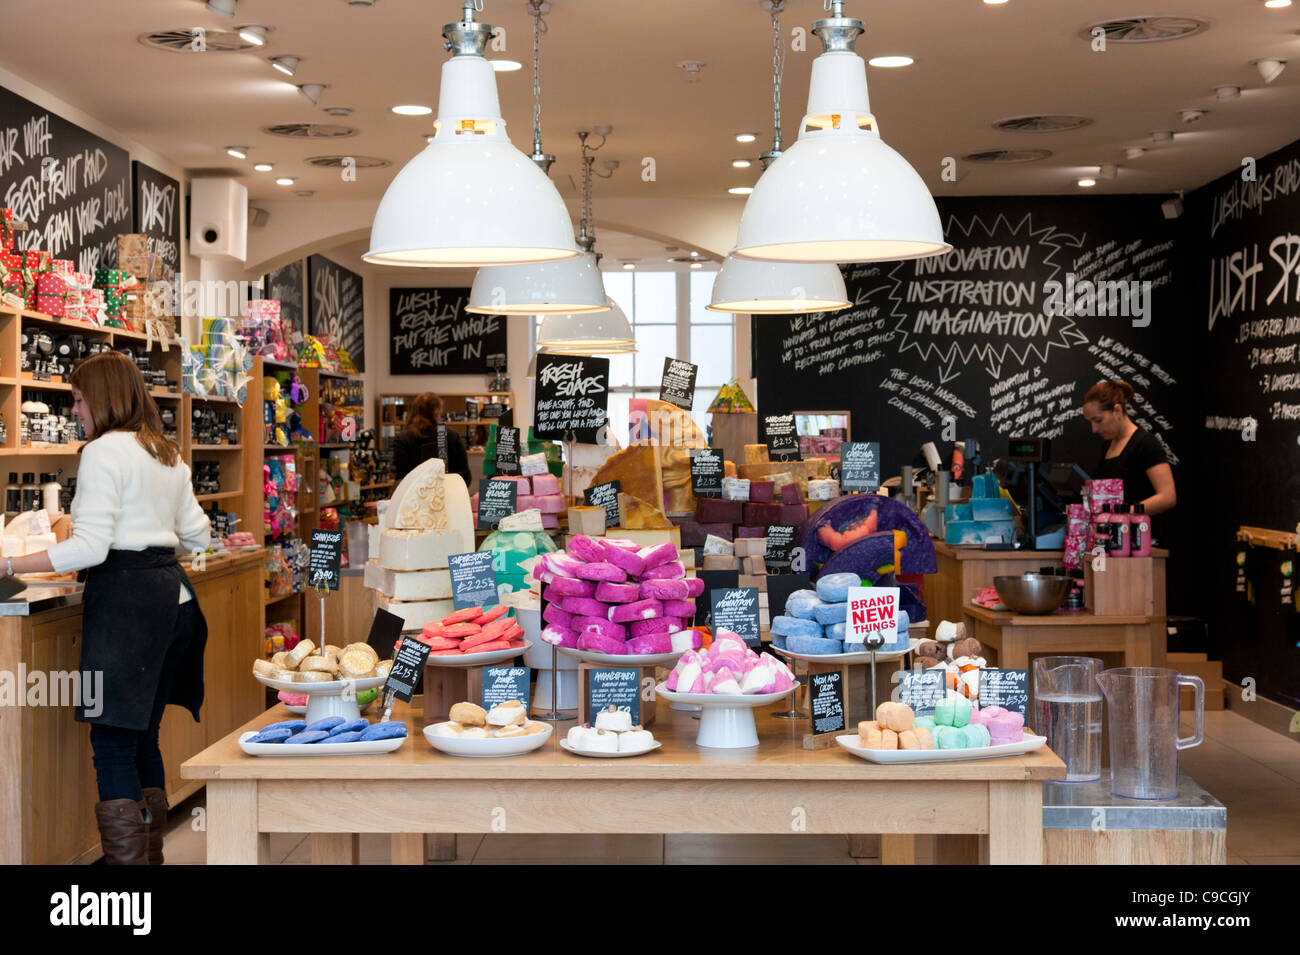 Lush store, London, England, UK - Stock Image